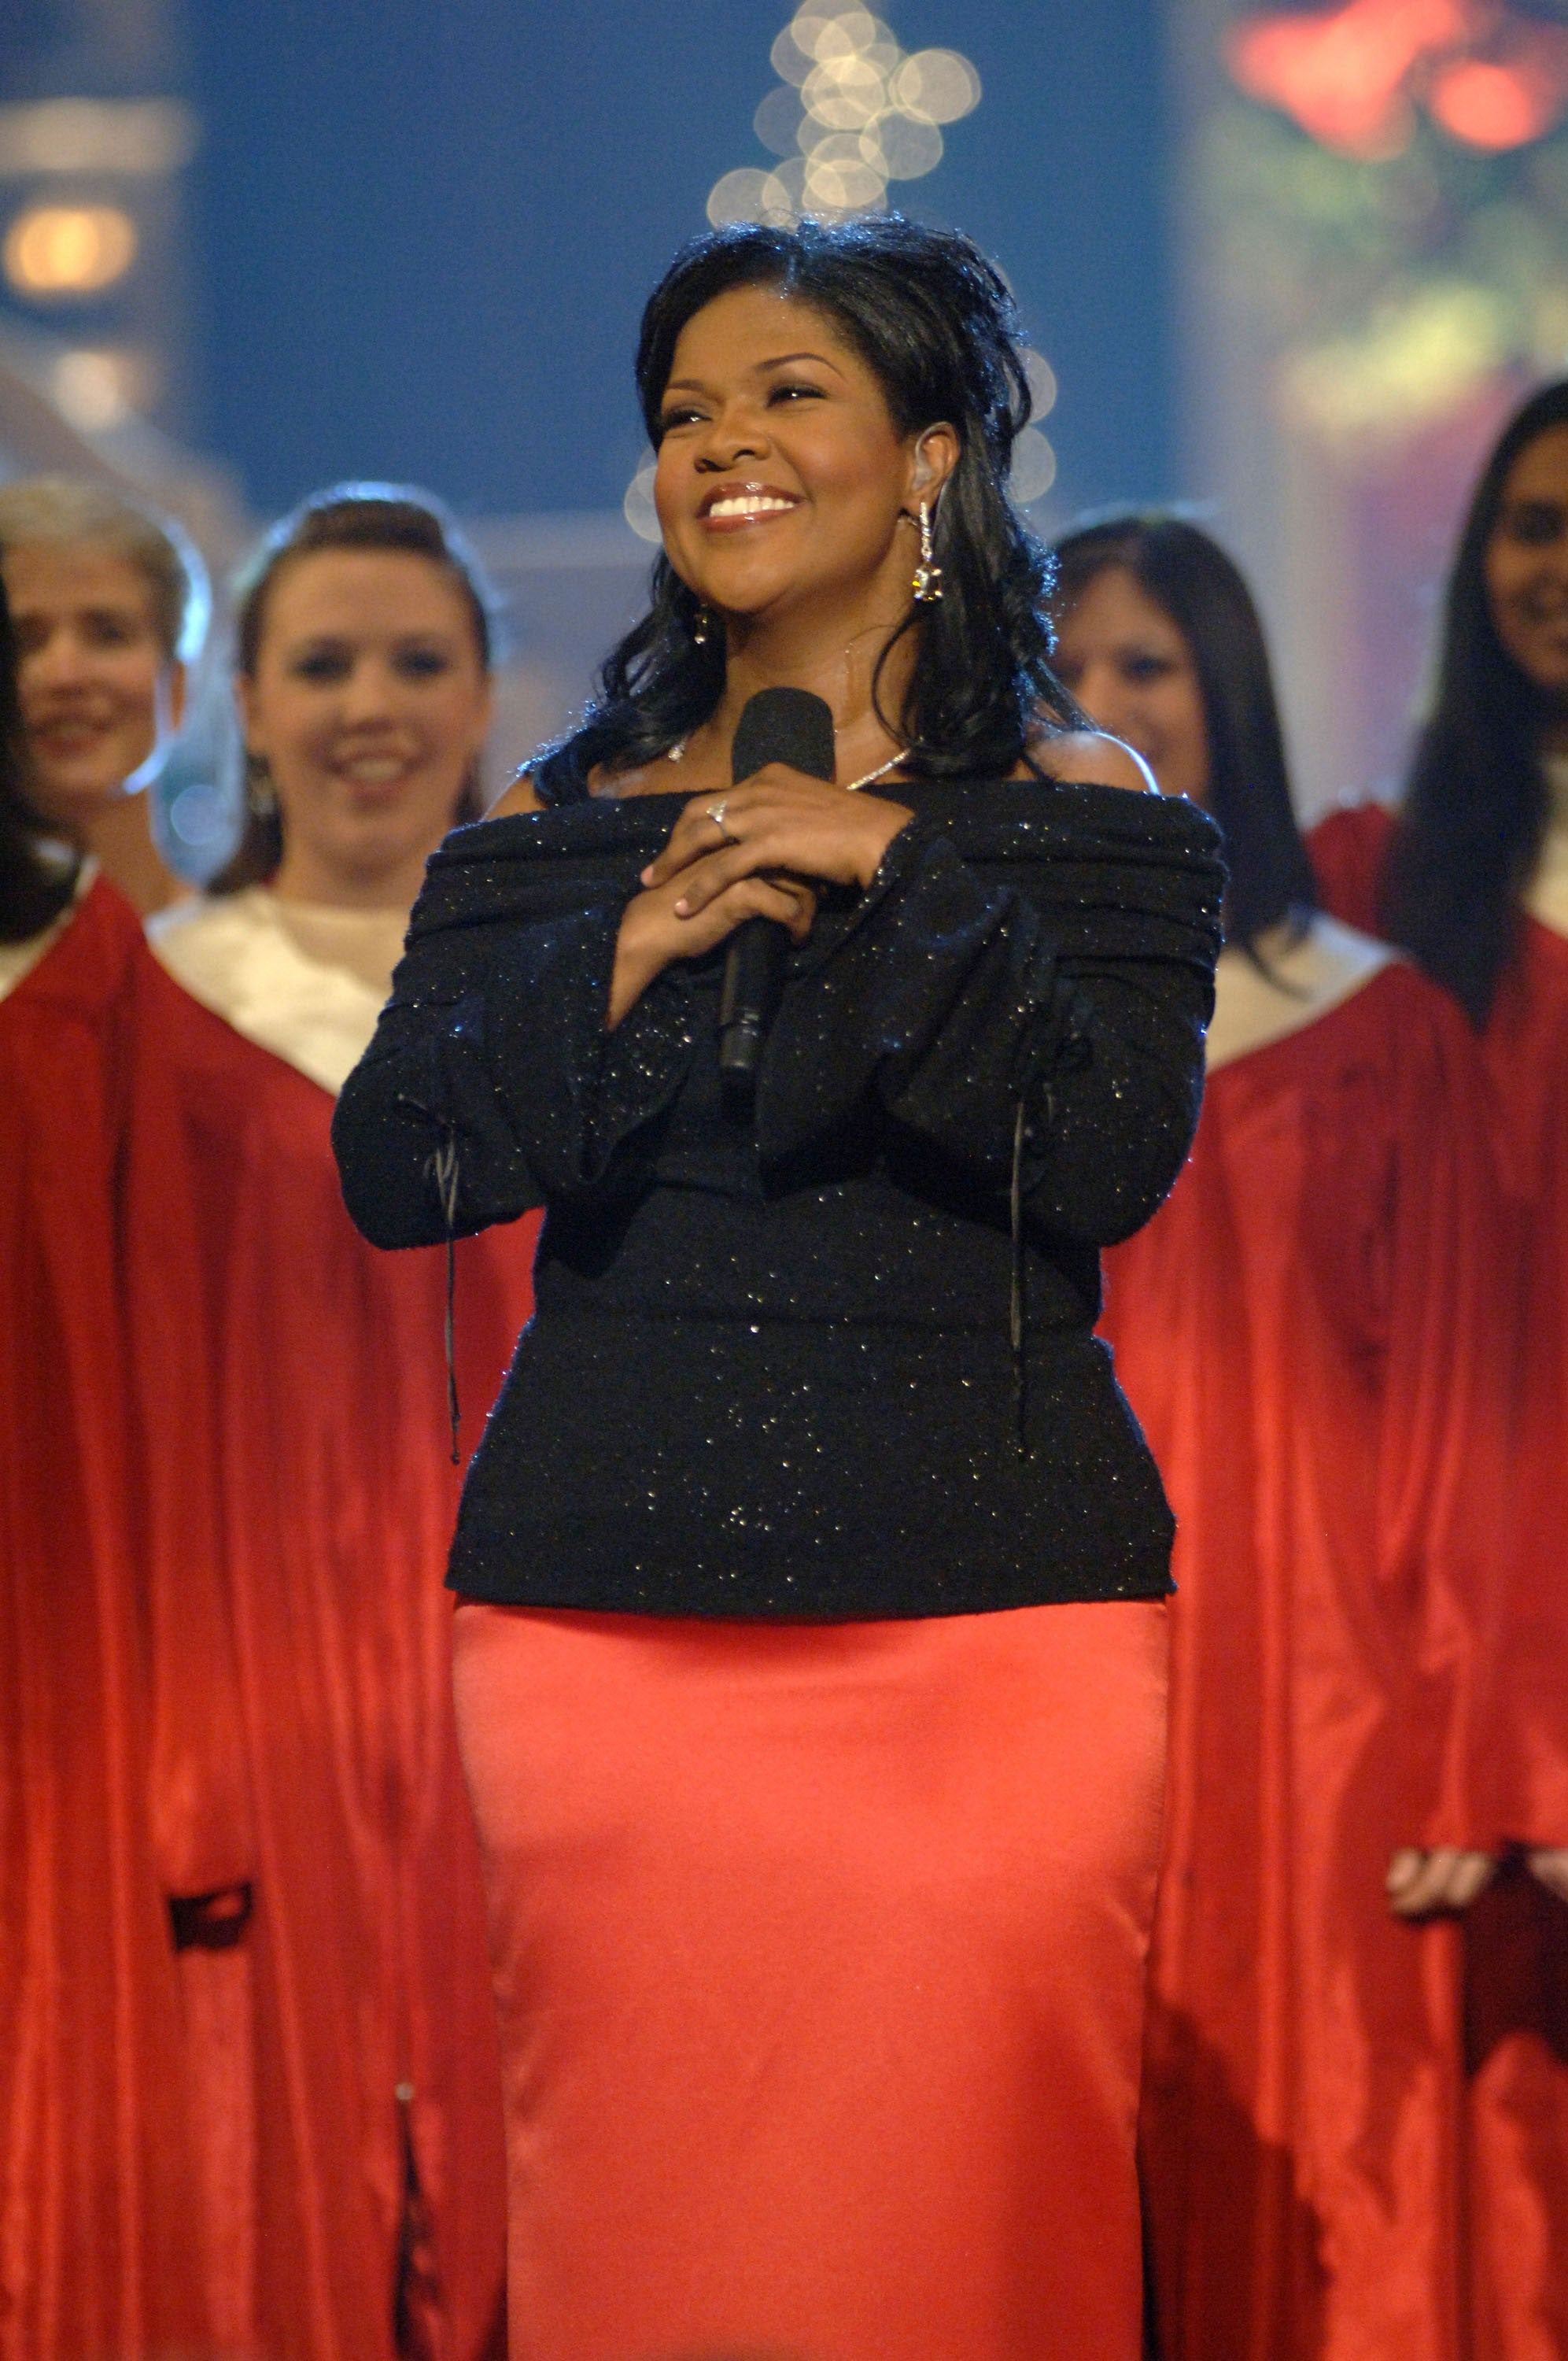 10 Holiday Gospel Songs for the Season - Essence